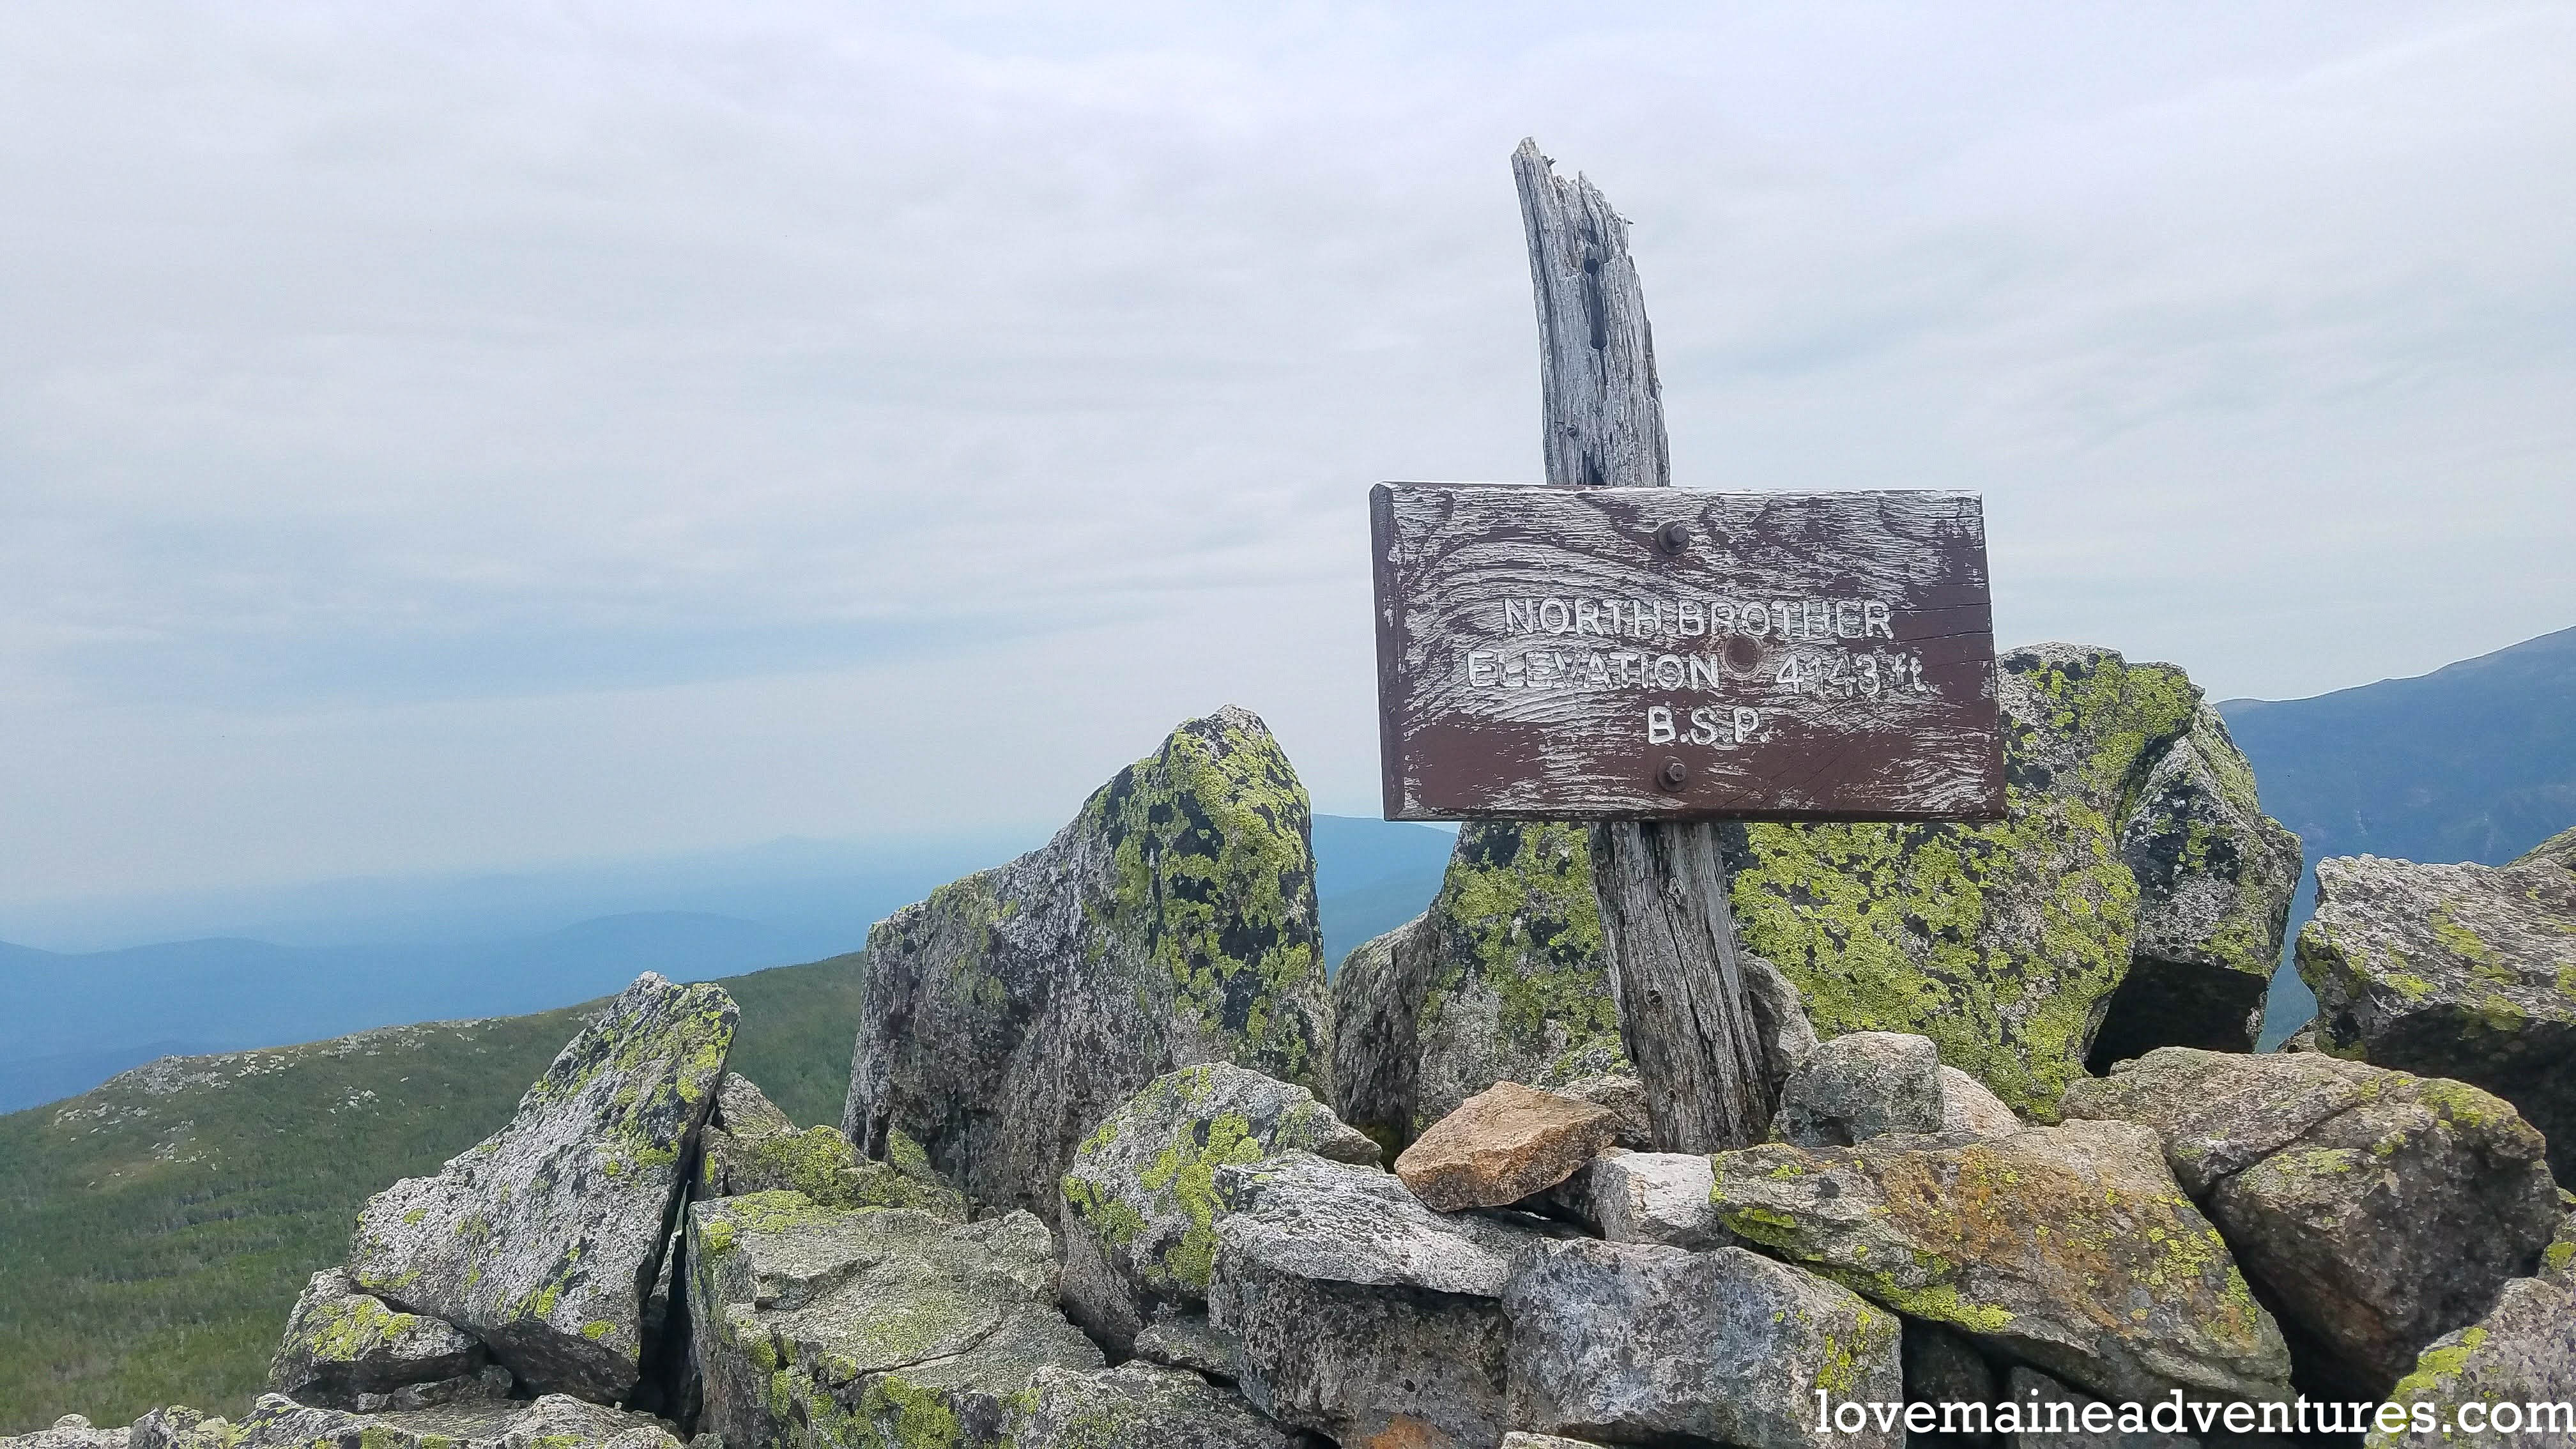 North Brother, a 4,000 footer in Baxter State Park